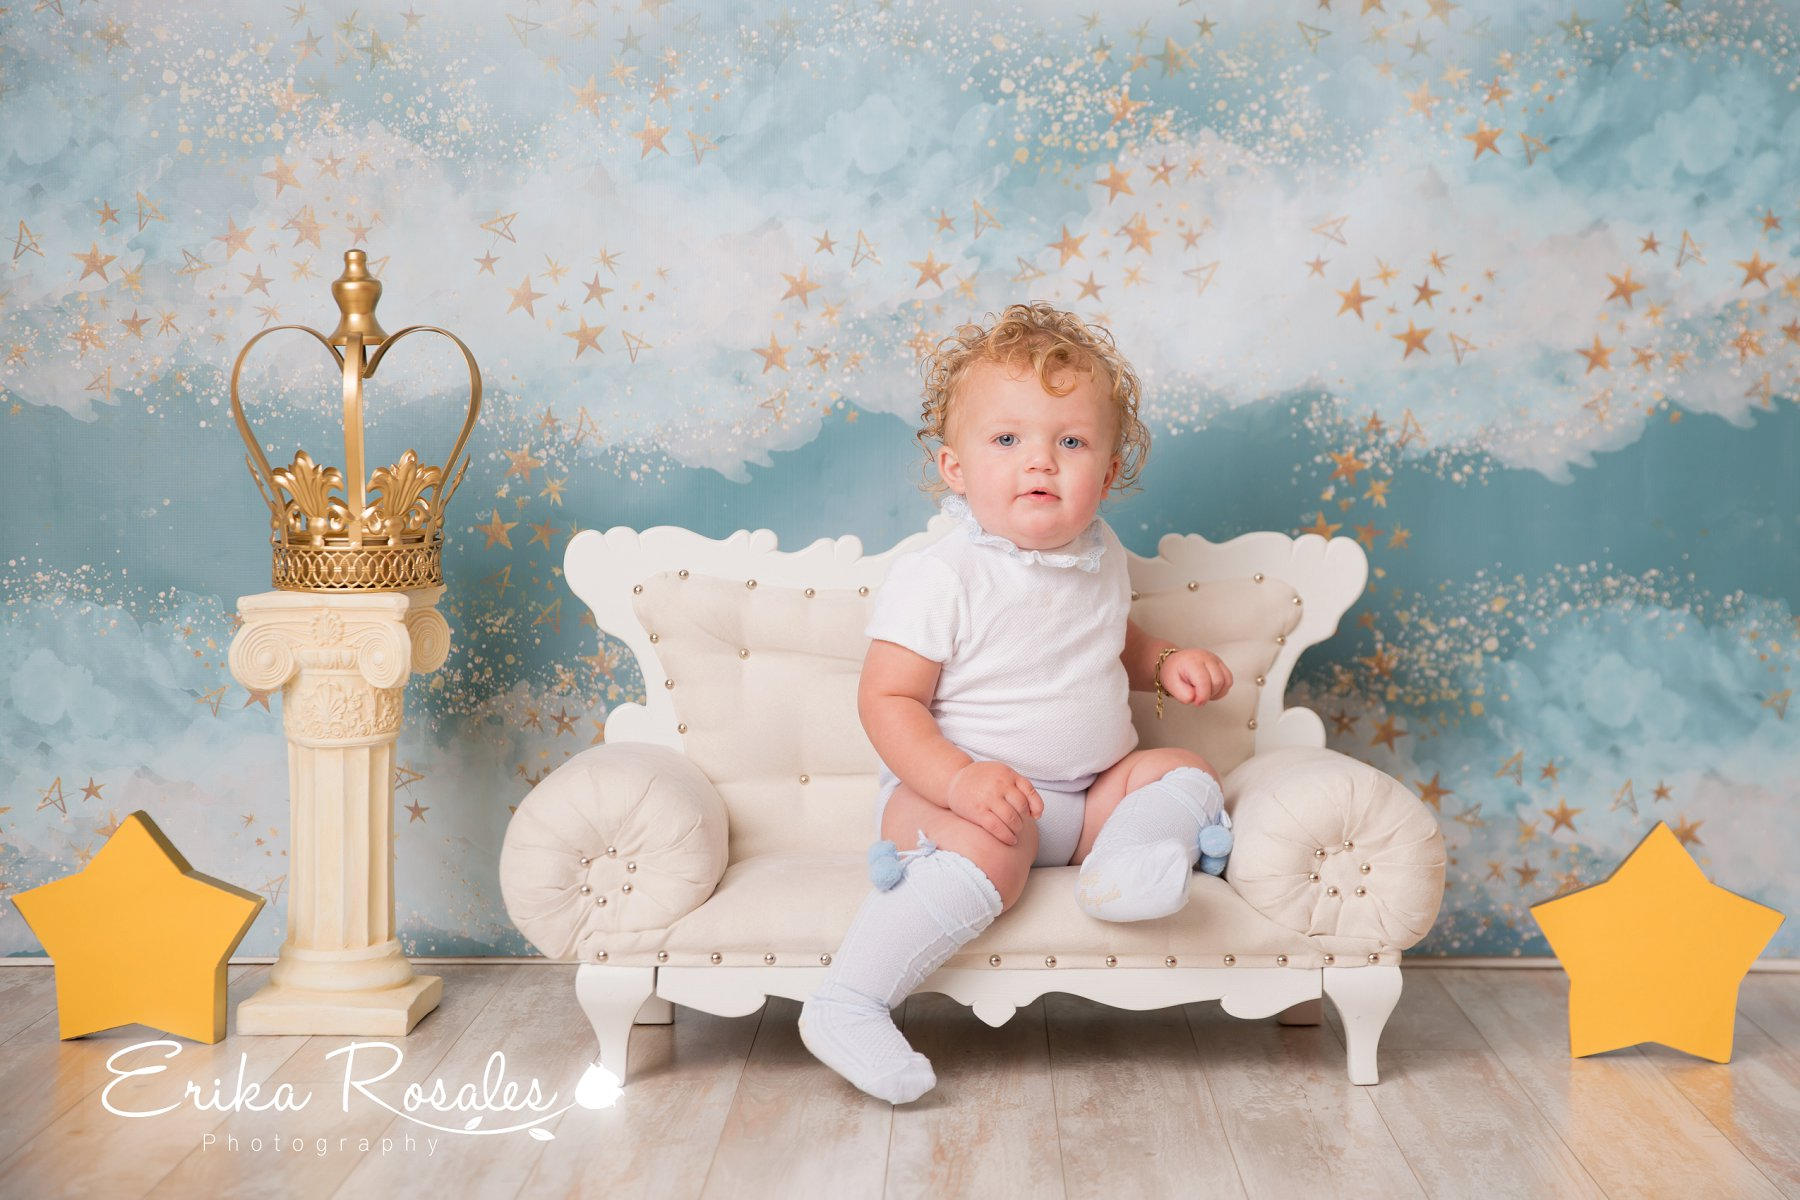 Studio baby is a canadian based manufacturer of professional newborn posing props selling to the newborn photography community worldwide